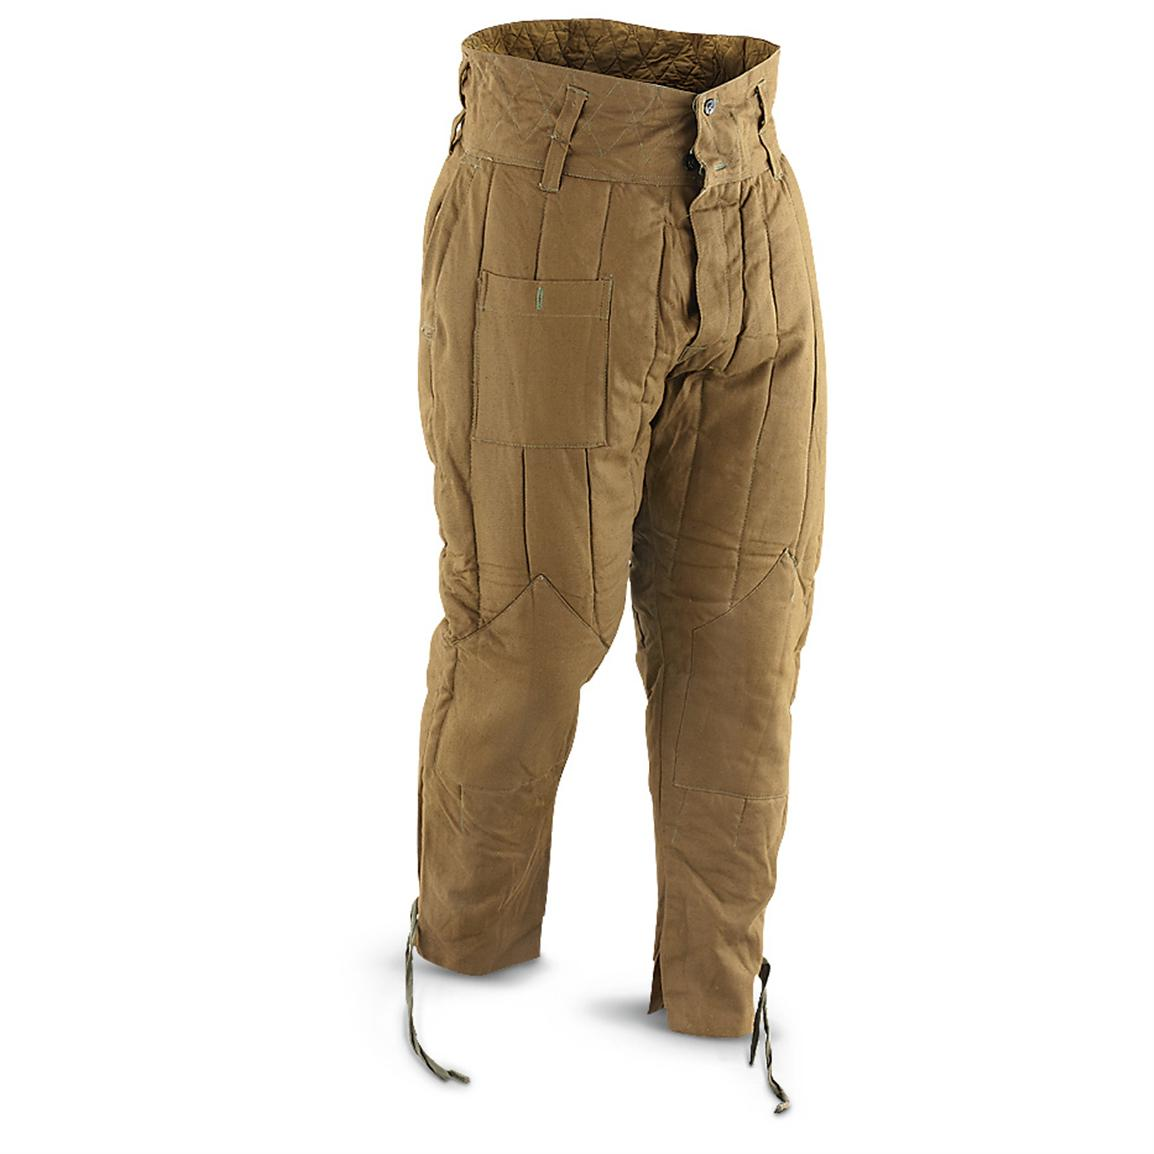 New Russian Military Surplus M43-style Pants, Brown